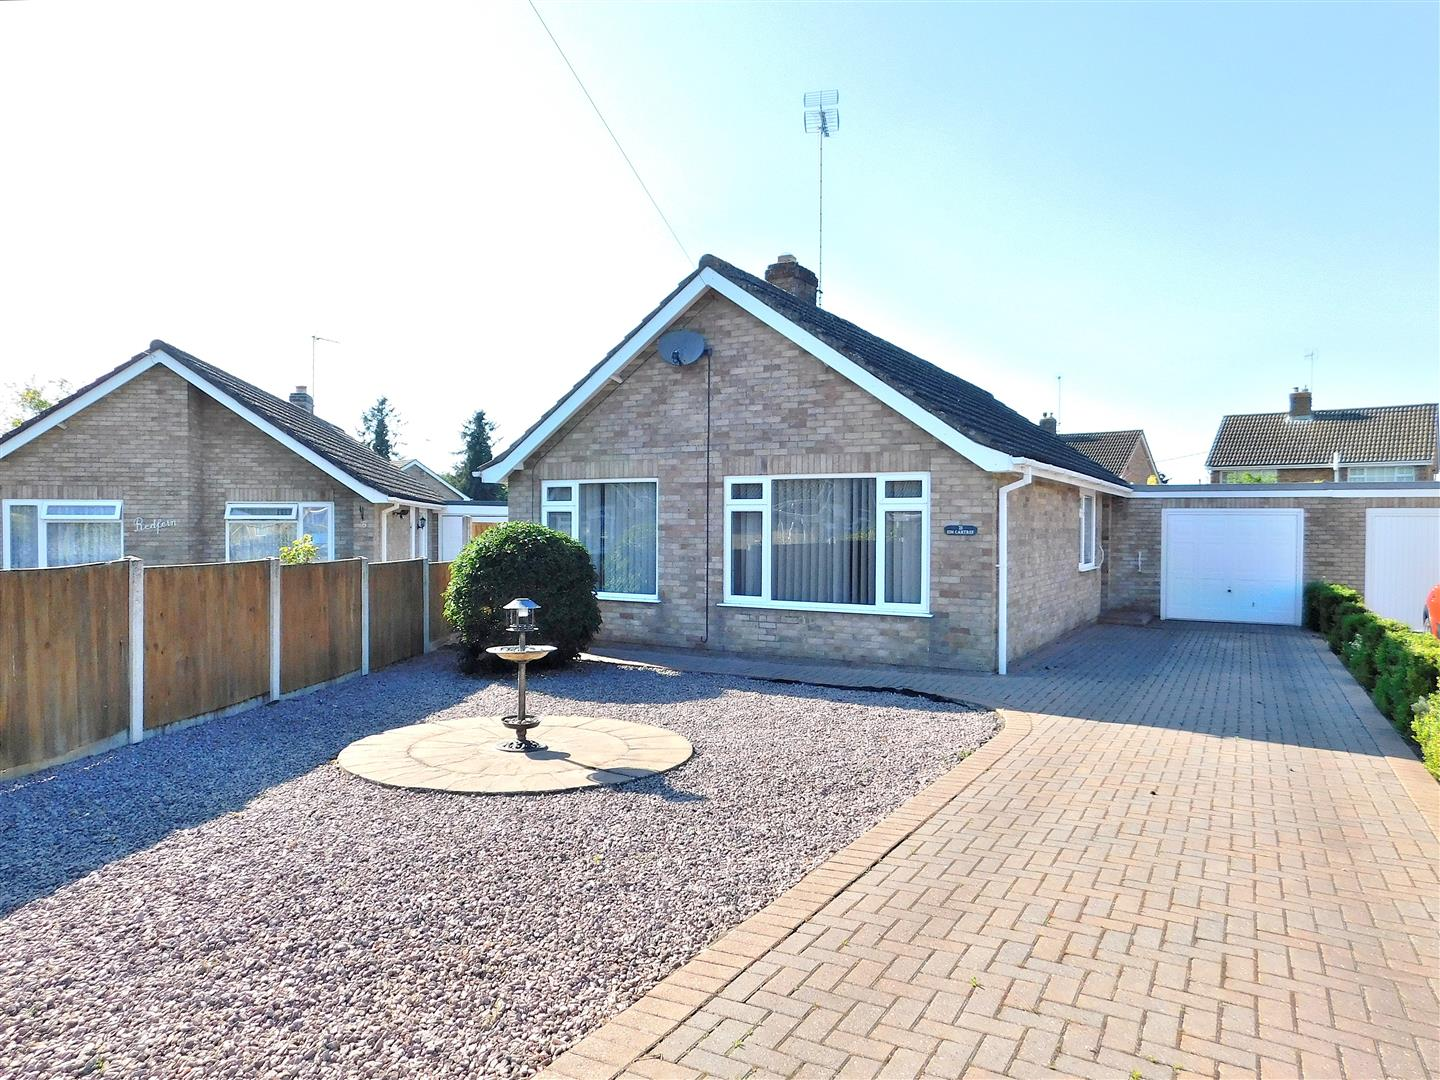 3 bed detached bungalow for sale in King's Lynn, PE30 3LZ, PE30